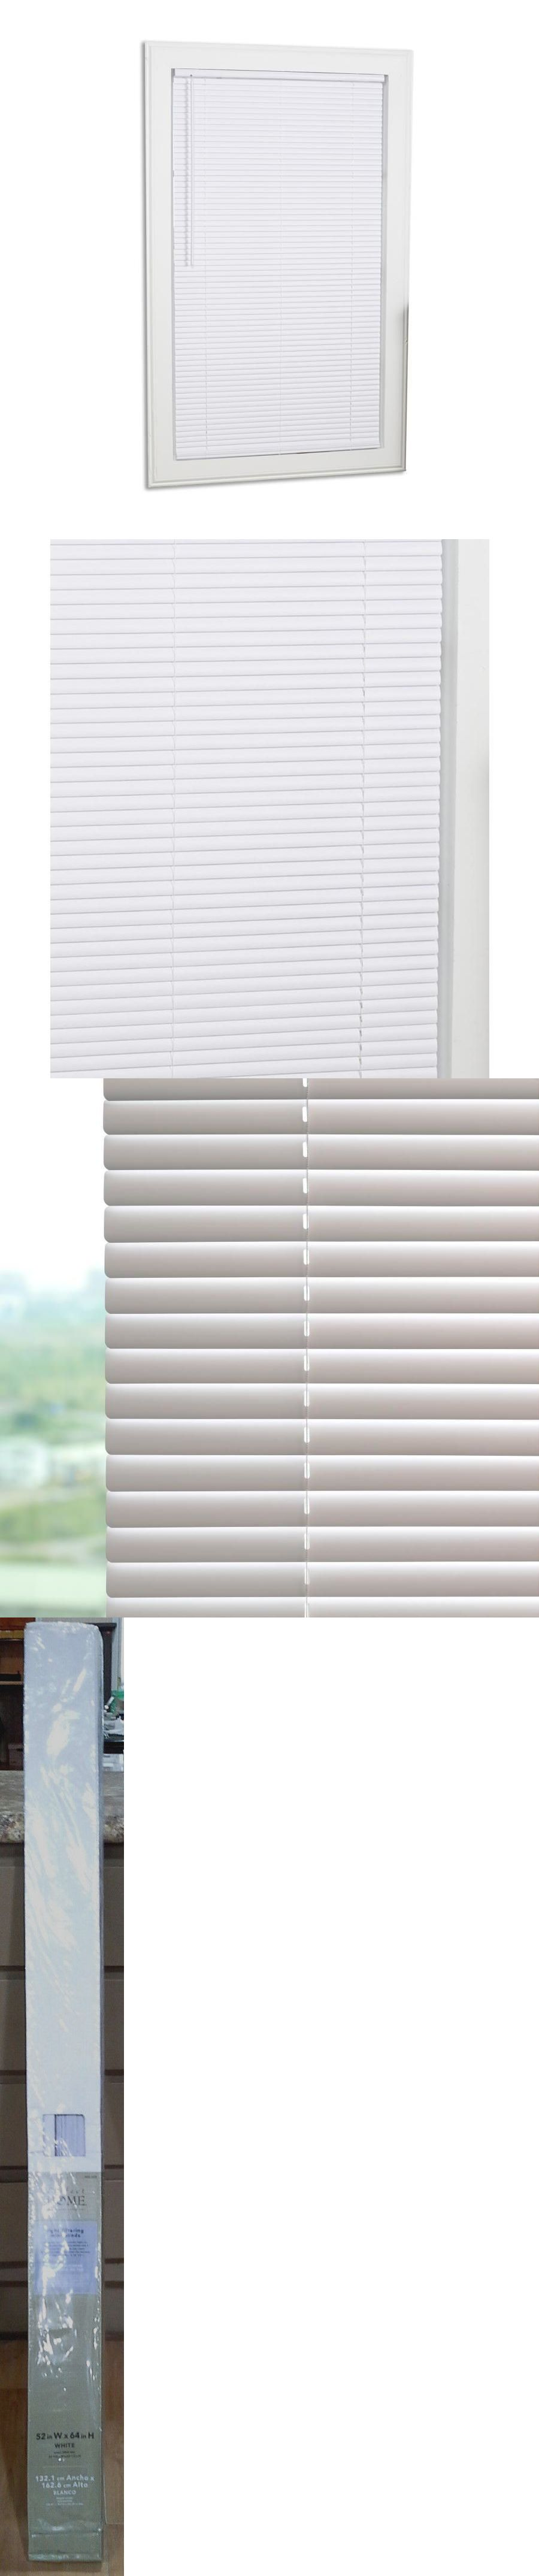 Blinds And Shades 20585 Perfect Home Indoor Light Filtering Mini Vinyl Window Blinds 52x64 White 1 Buy It Now Only Blinds For Windows Blinds Window Vinyl